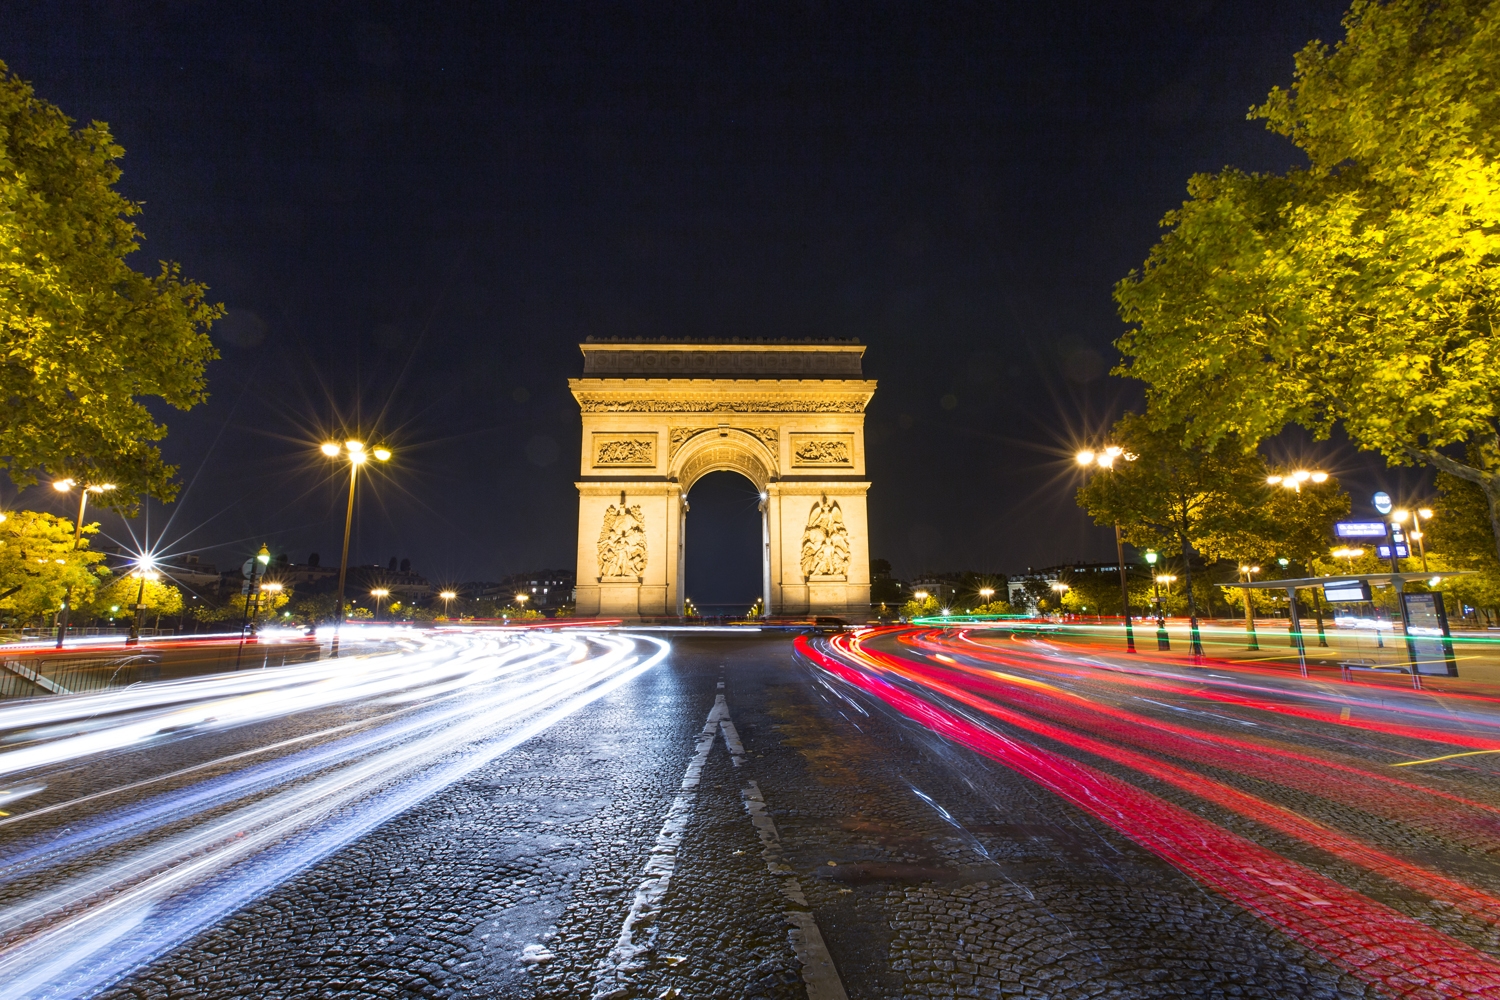 we took a walk from the Eiffel tower to the Arc De Triomphe which was literally down the block. I wish we were there a few minutes earlier to catch the sunset but amongst all chaos of the traffic, I managed to get this shot from the middle of the street.  Canon 6D, Canon 16-35mm f/2.8L @16mm (iso200, f/16, 8s)